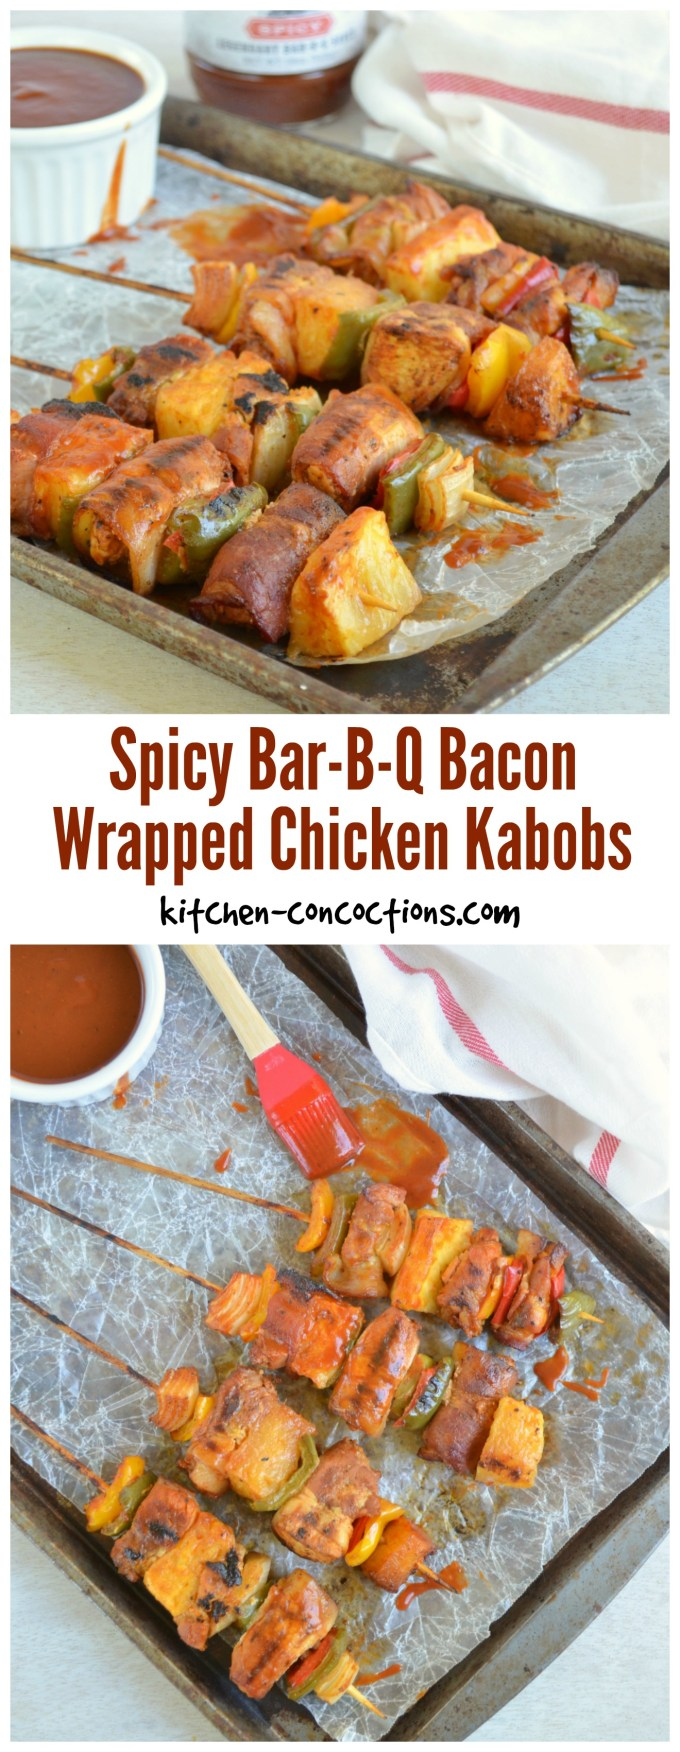 Spicy Bar-B-Q Bacon Wrapped Chicken Kabob Recipe